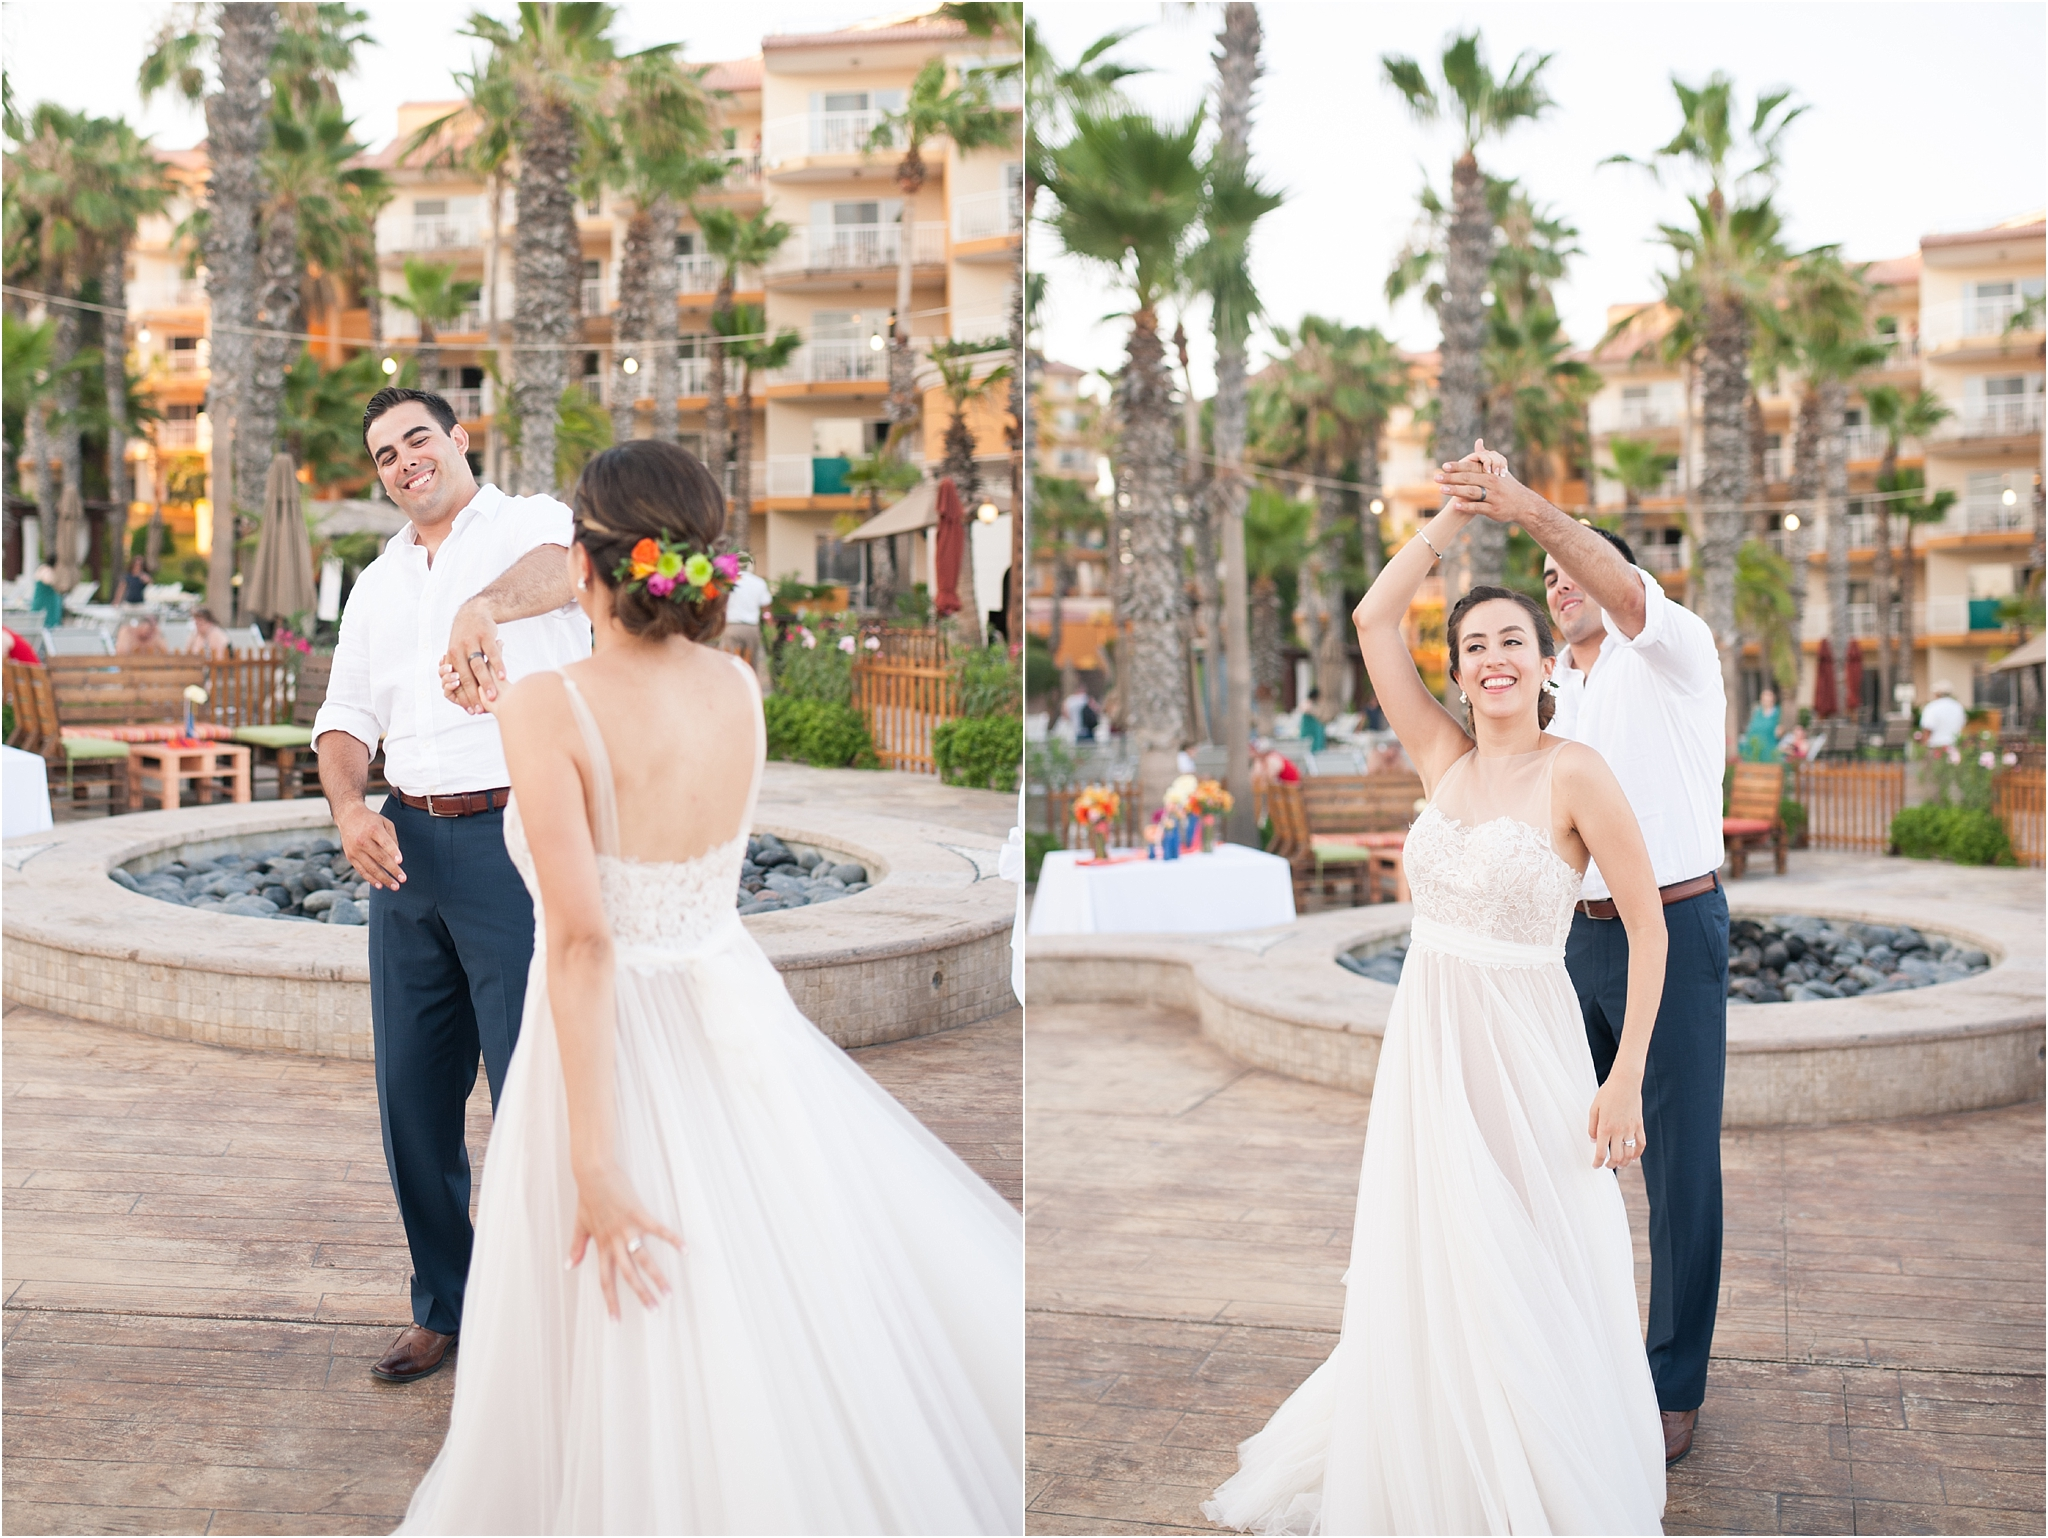 kayla kitts photography - albuquerque wedding photographer - new mexico wedding photographer - desination wedding photographer - cabo wedding photographer_0073.jpg